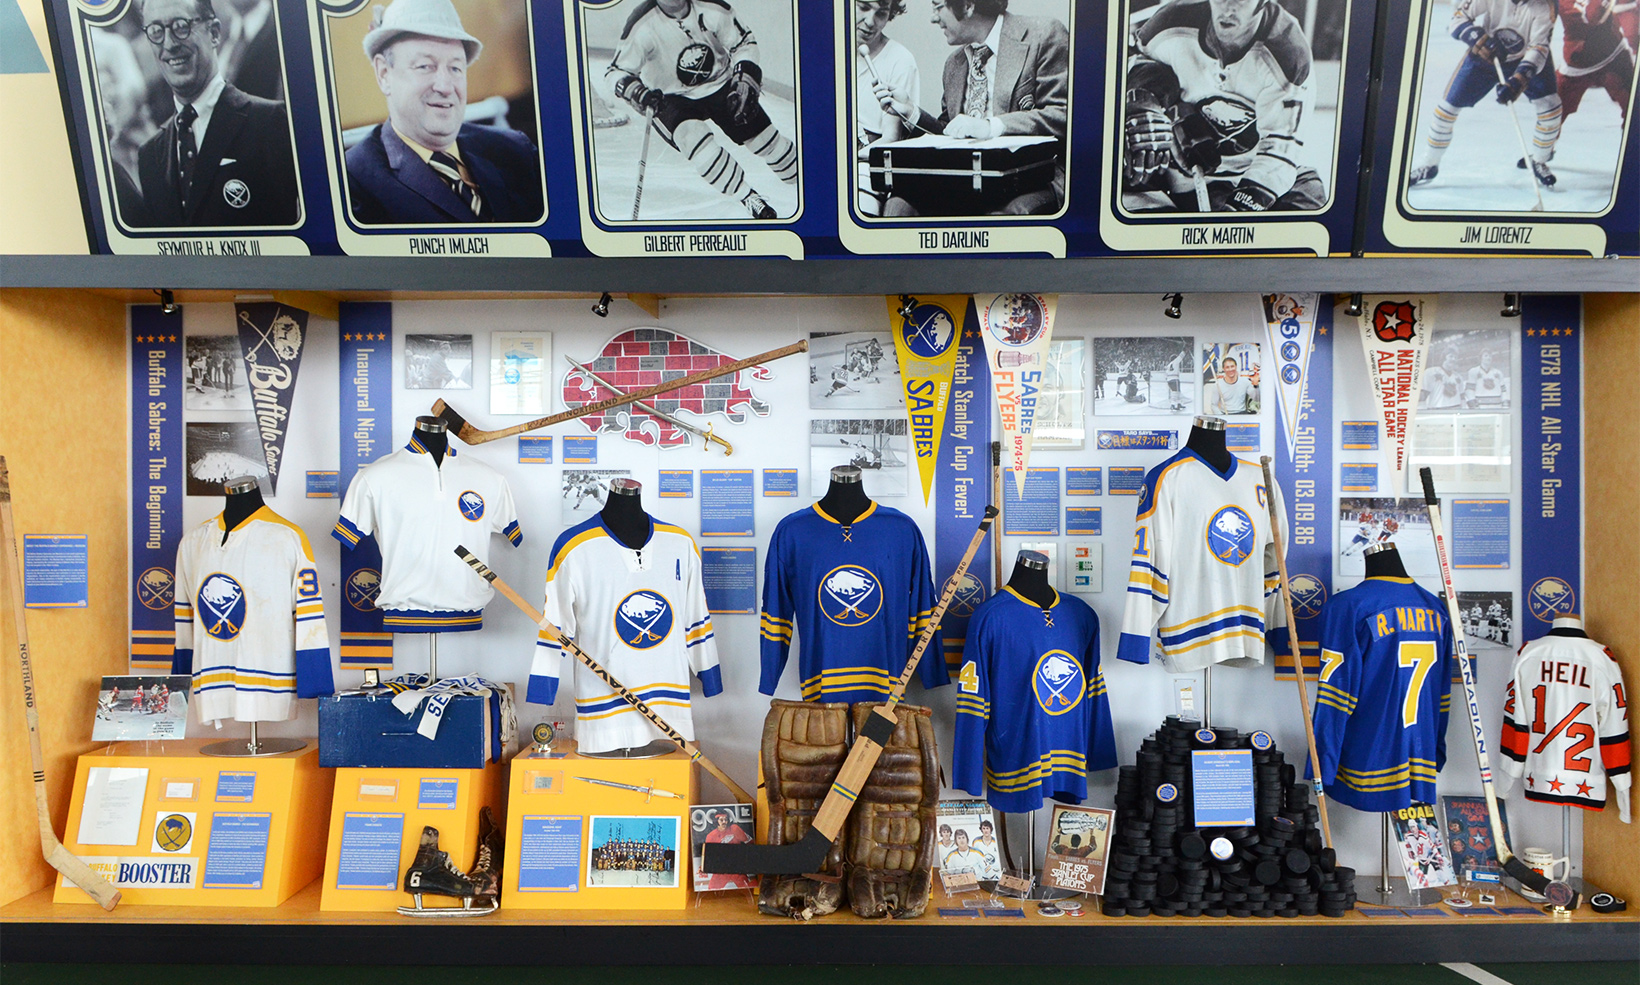 One of the two display cases of the Sabres' 40th Anniversary Exhibit at the HSBC arena, full of jerseys, sticks, and other hockey memorabilia